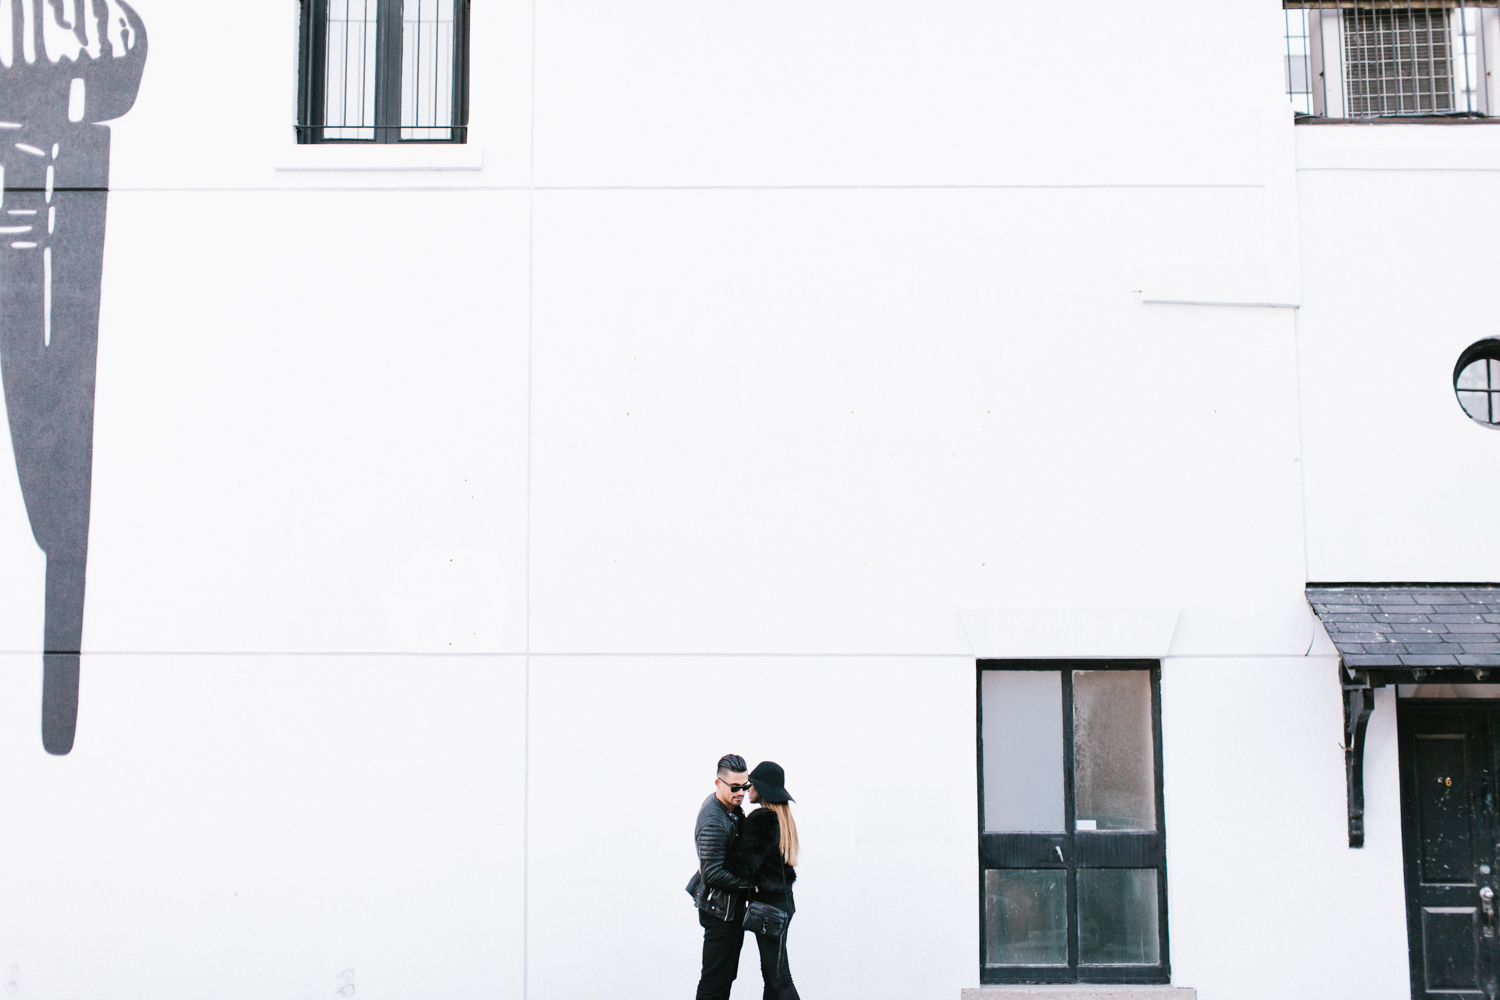 Jodi-Blk-fashion-blogger-Jose-Lopez-fit-michael-rousseau-photography-streetwear-fashion-engagement-session031.jpg